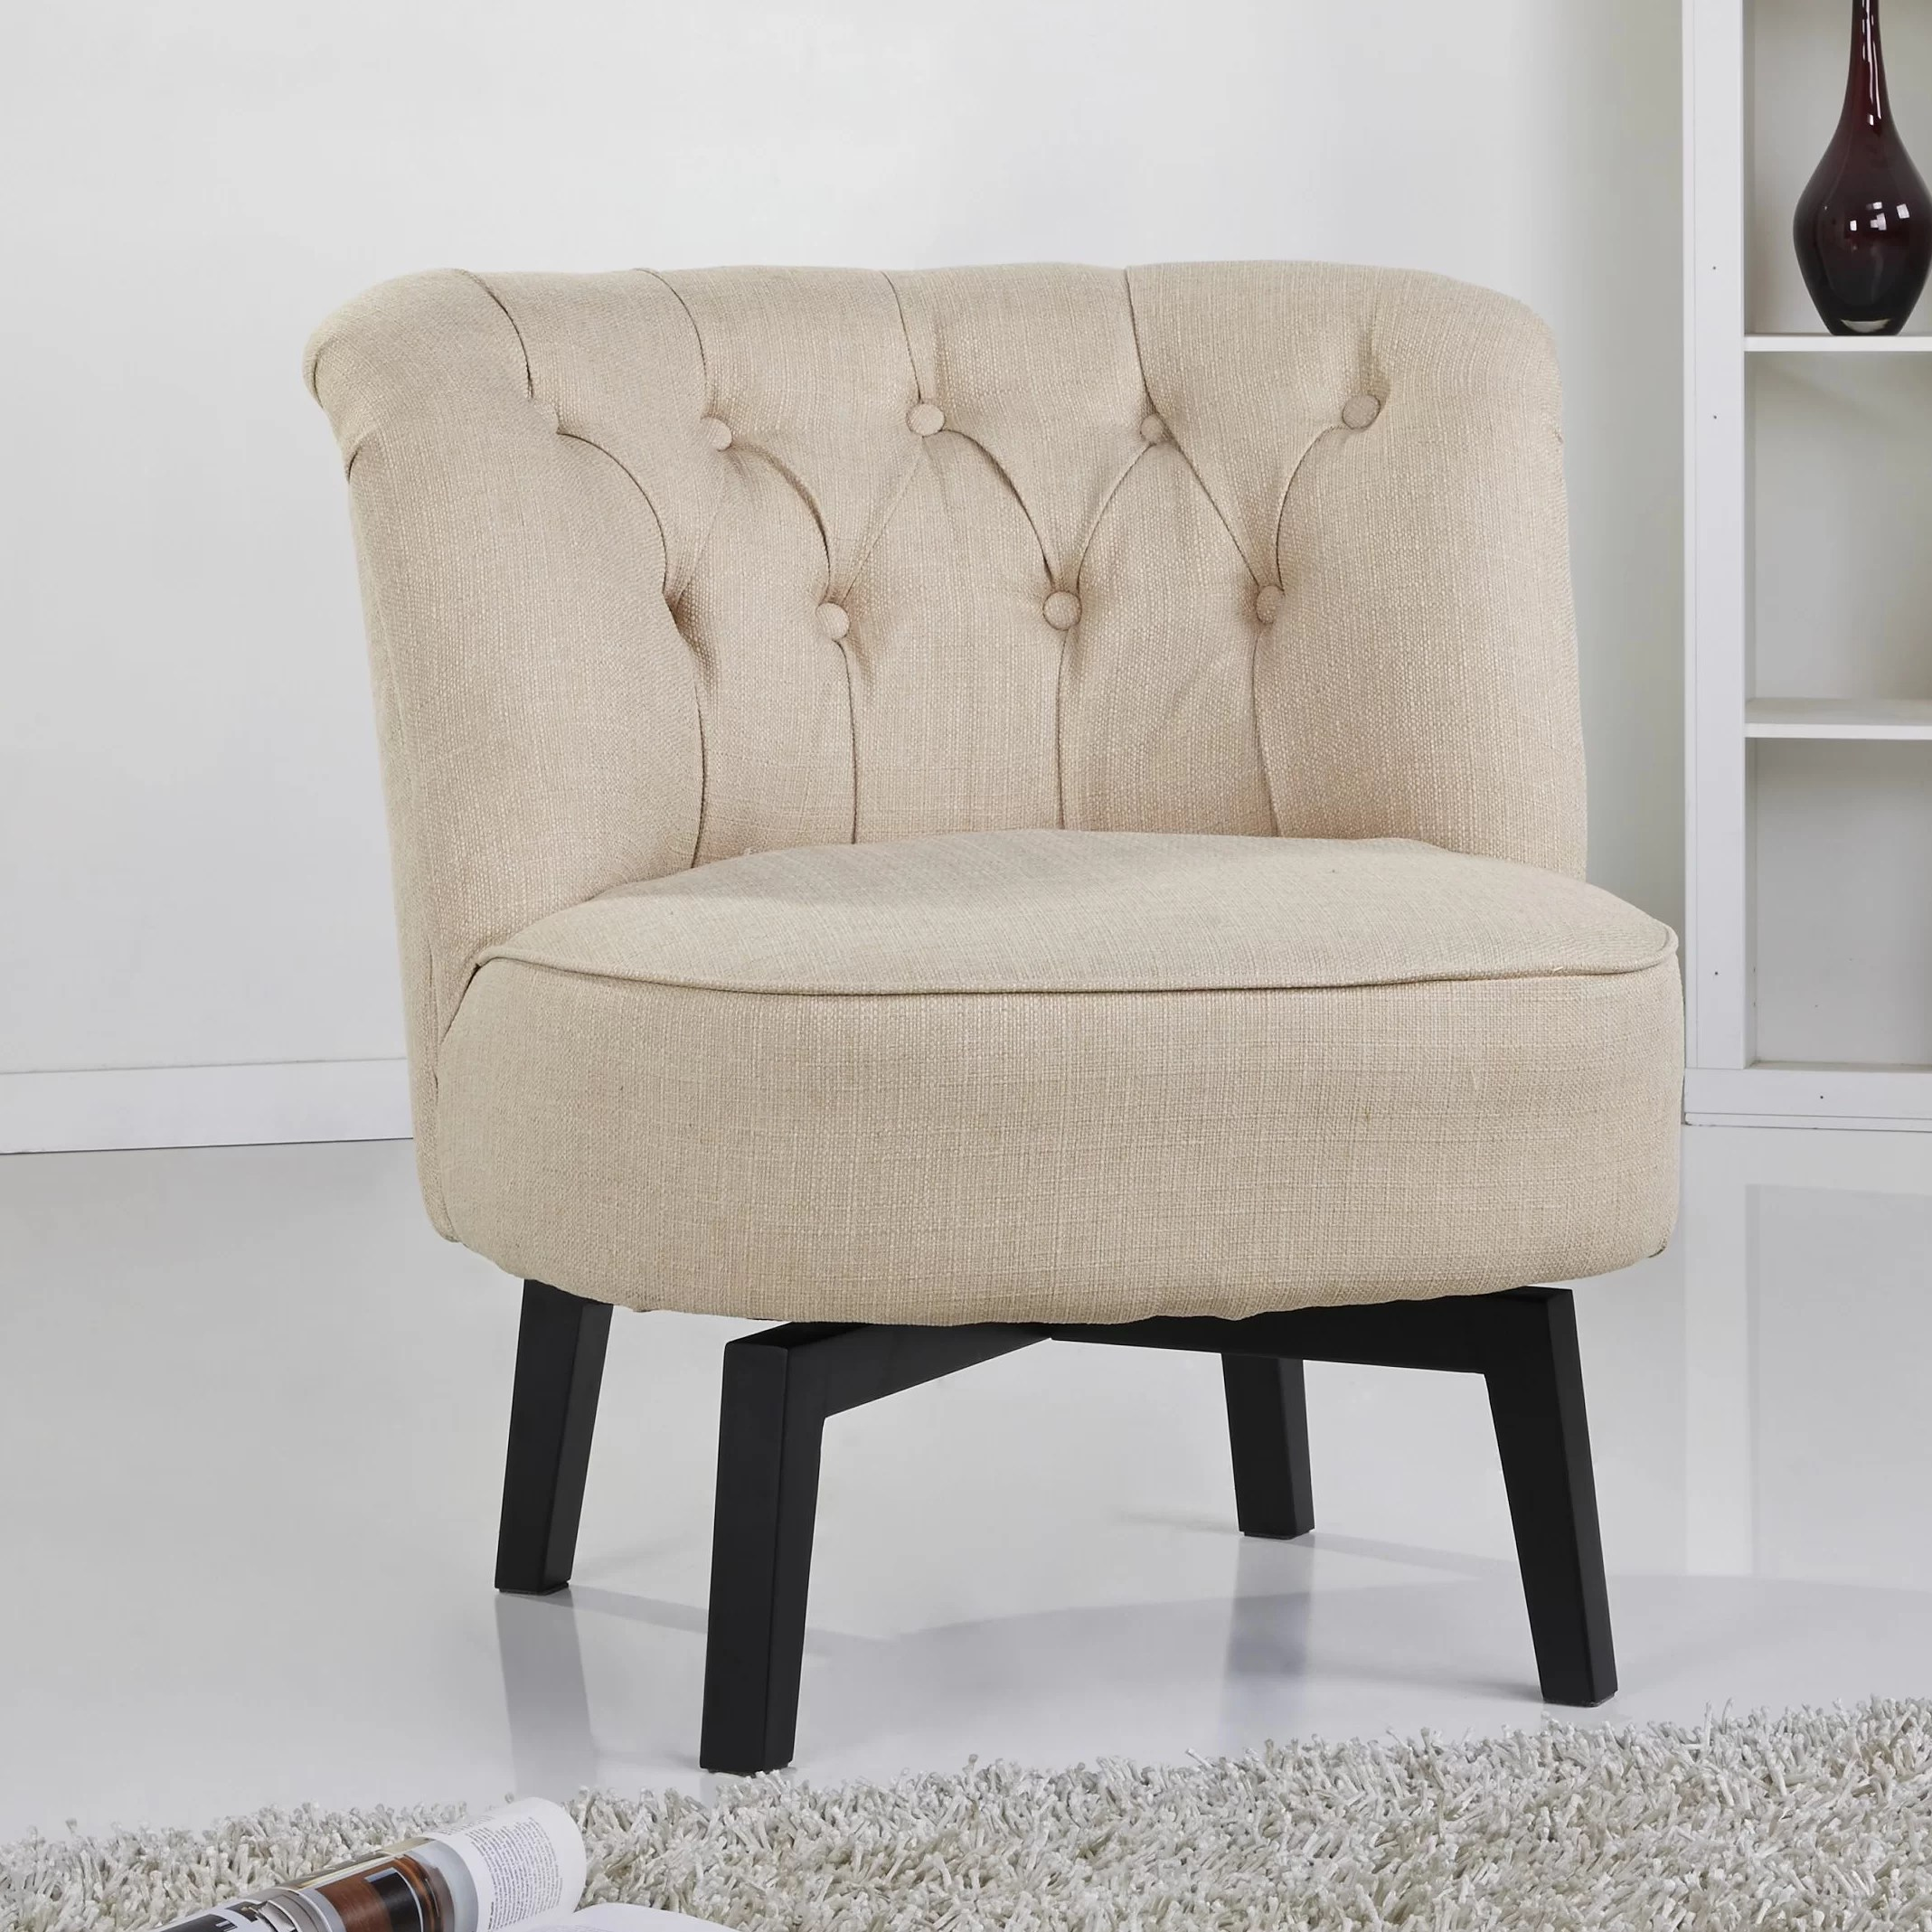 swivel tub chairs hanging chair from ceiling ikea leader lifestyle jade and reviews wayfair uk